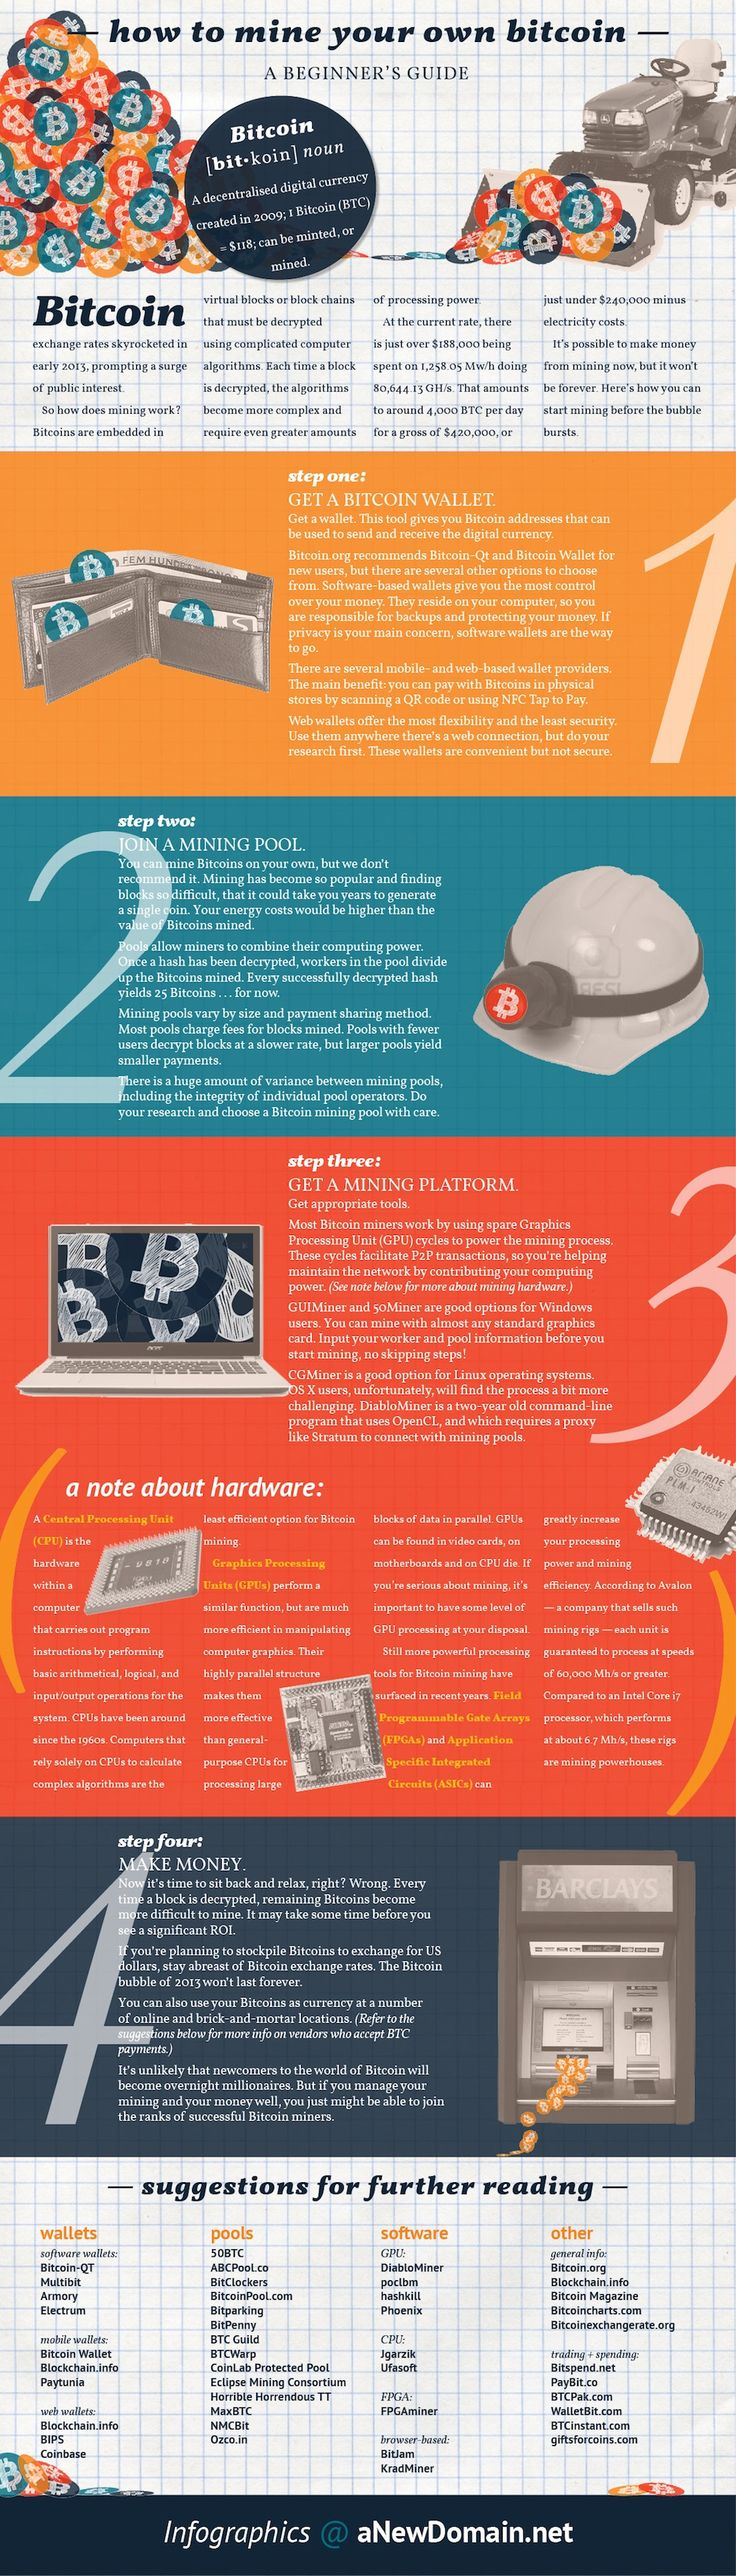 Here's an awesome infographic I wrote and Madison designed. It's about mining bitcoins. Check it!